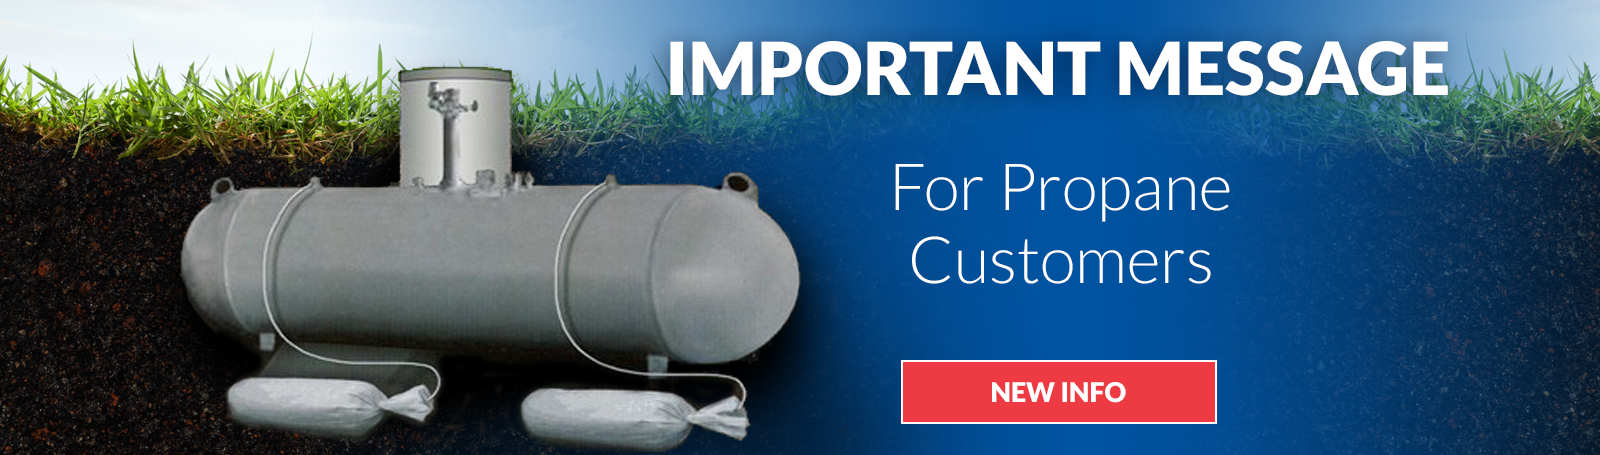 propane-anode-banner-20190507.png